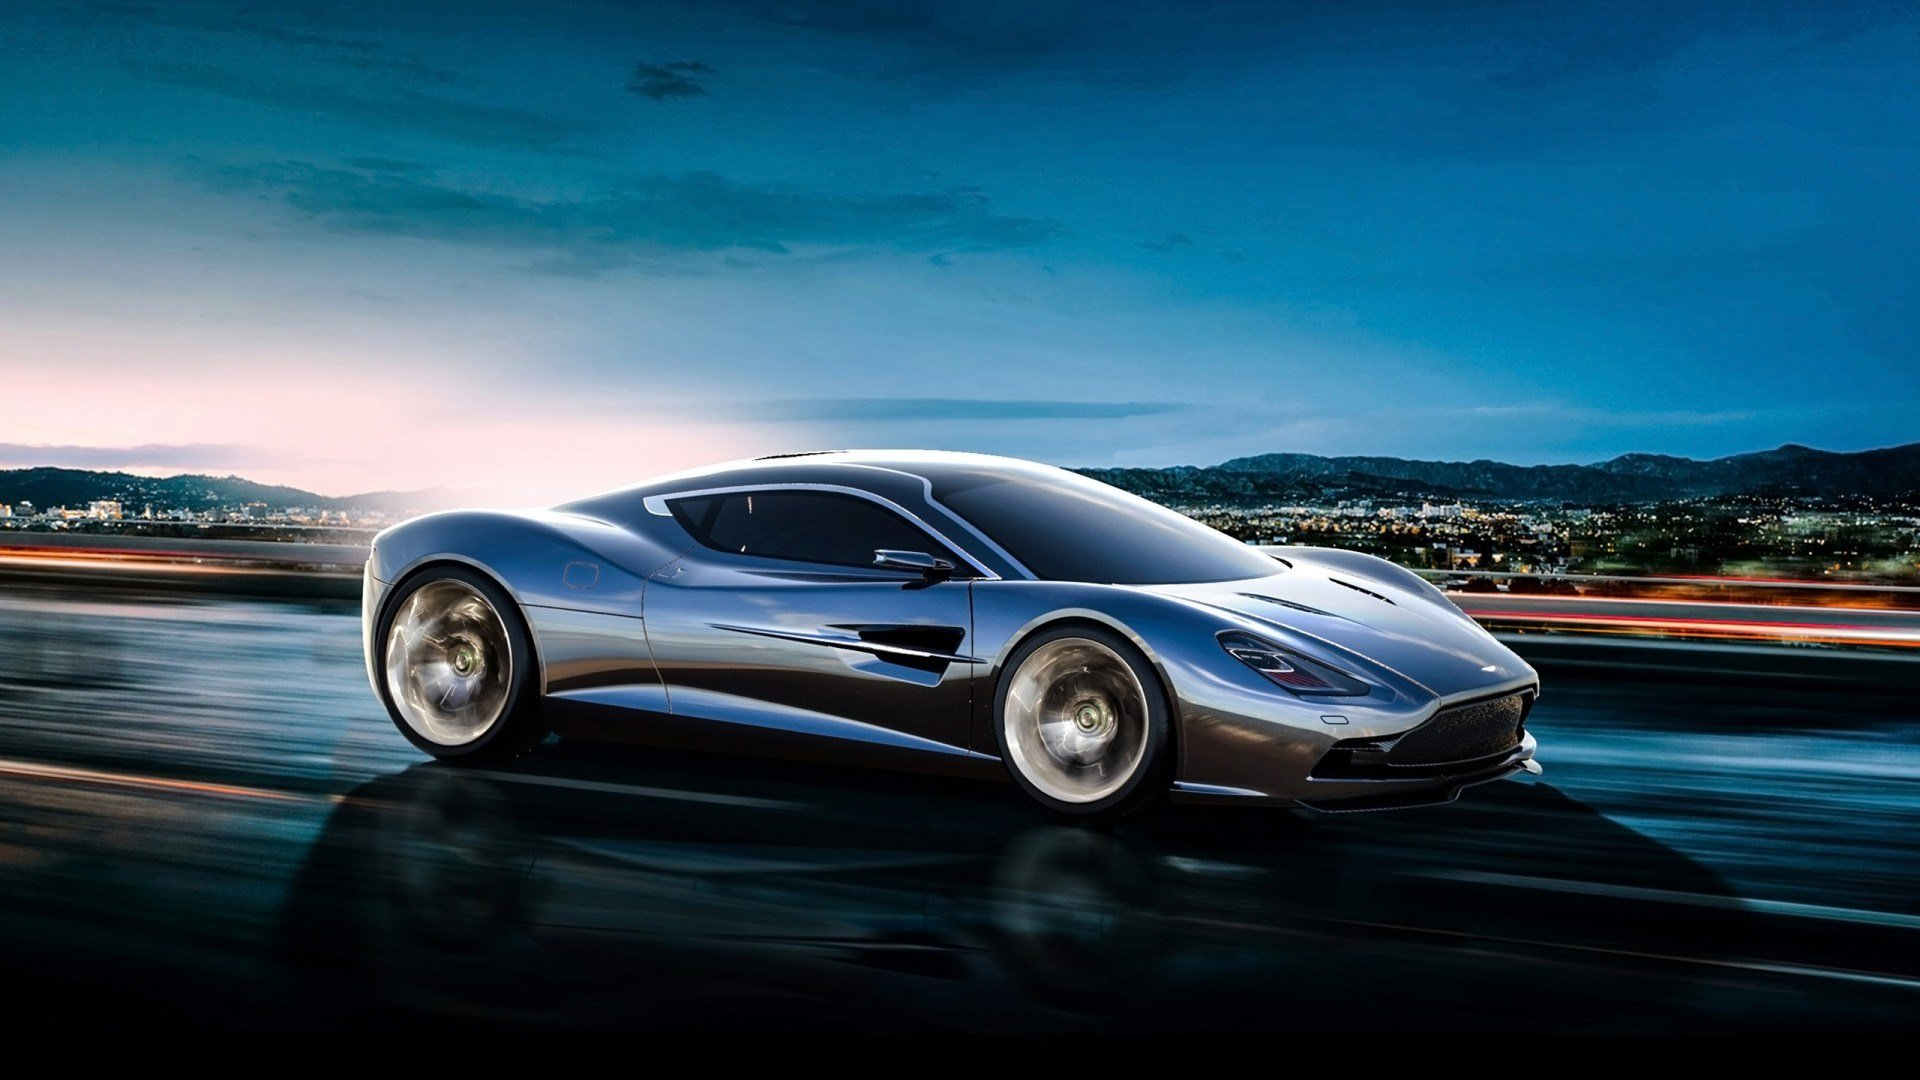 Latest 2013 Aston Martin Dbc Concept 3 Wallpaper Hd Car Free Download